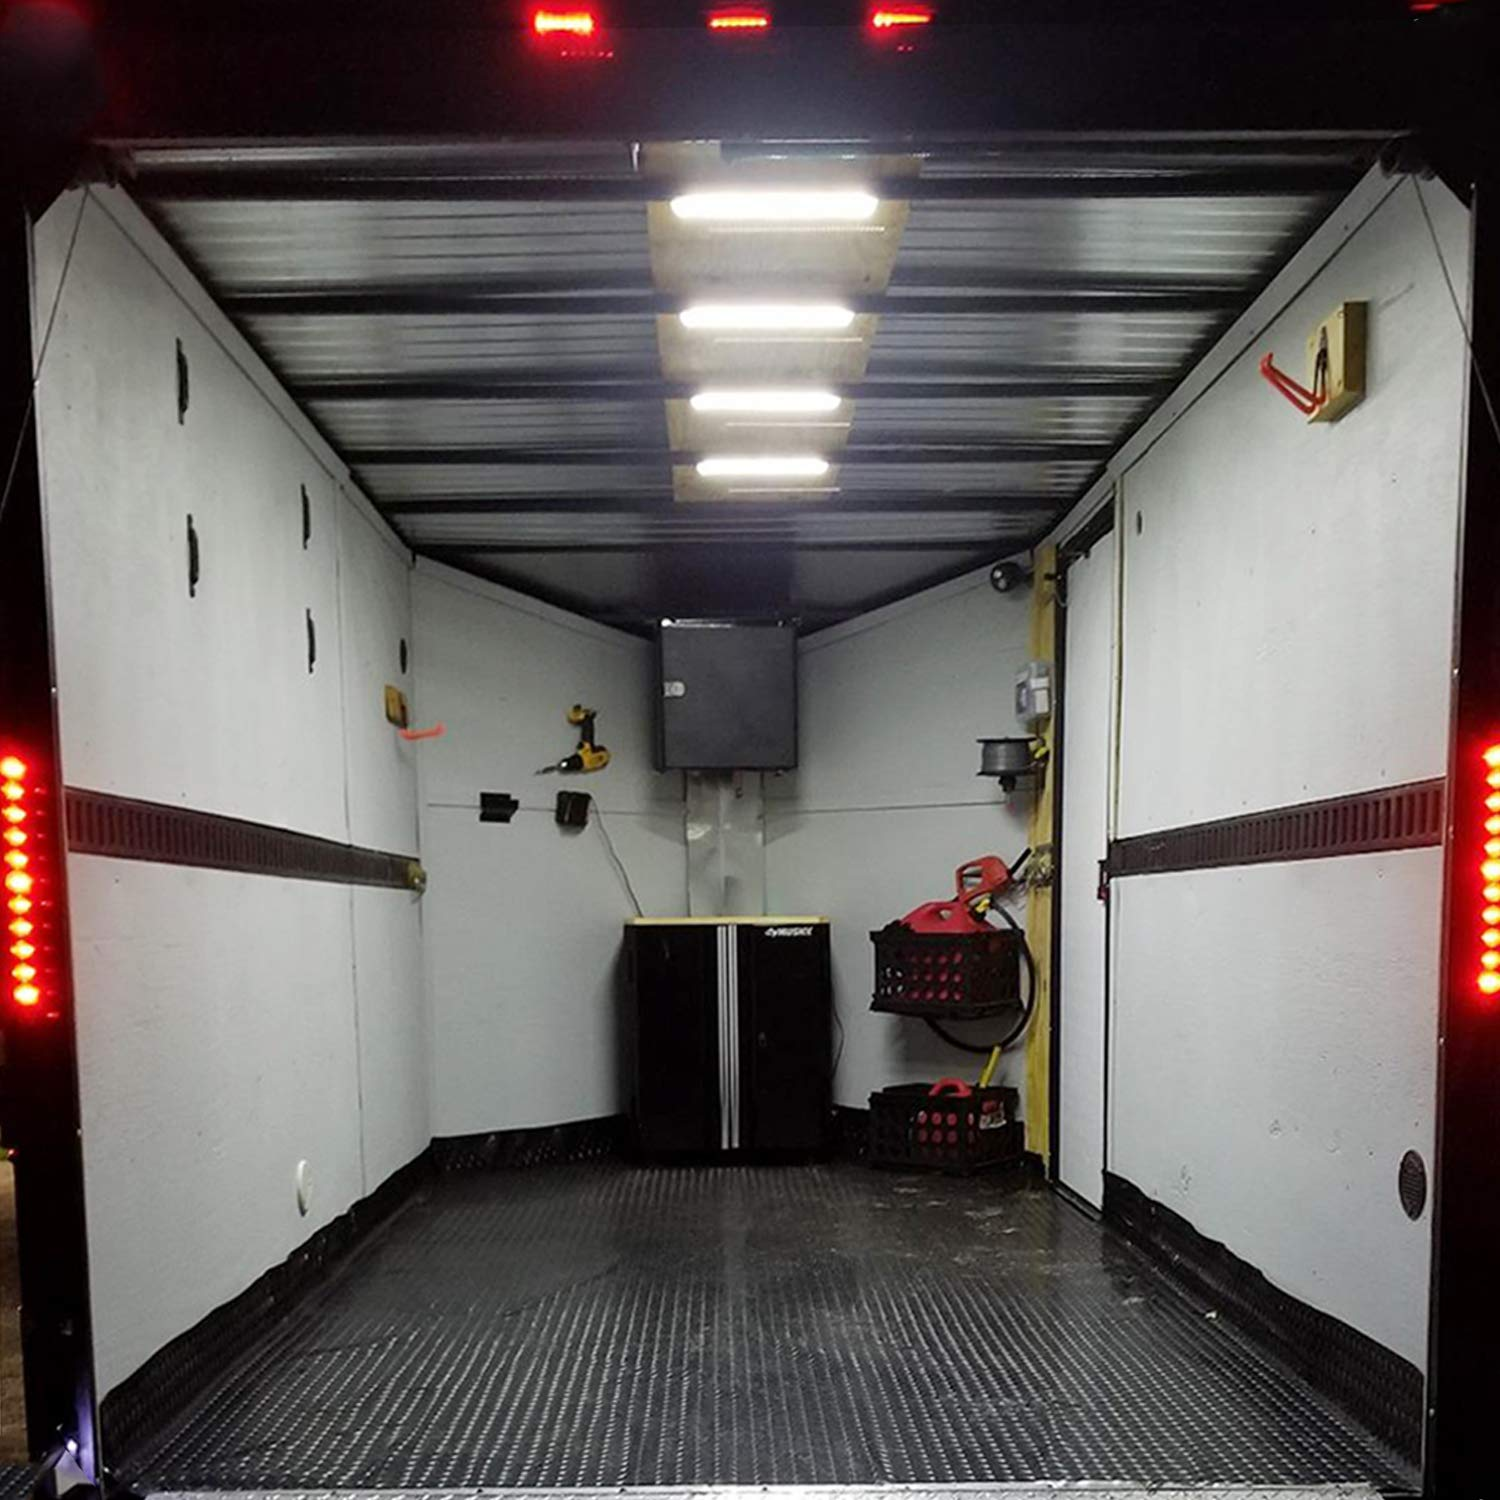 12V 60 LEDs Van Interior Light Kits 20 Modules, White Ampper LED Ceiling Lights Kit for Van RV Boats Caravans Trailers Lorries Sprinter Ducato Transit VW LWB